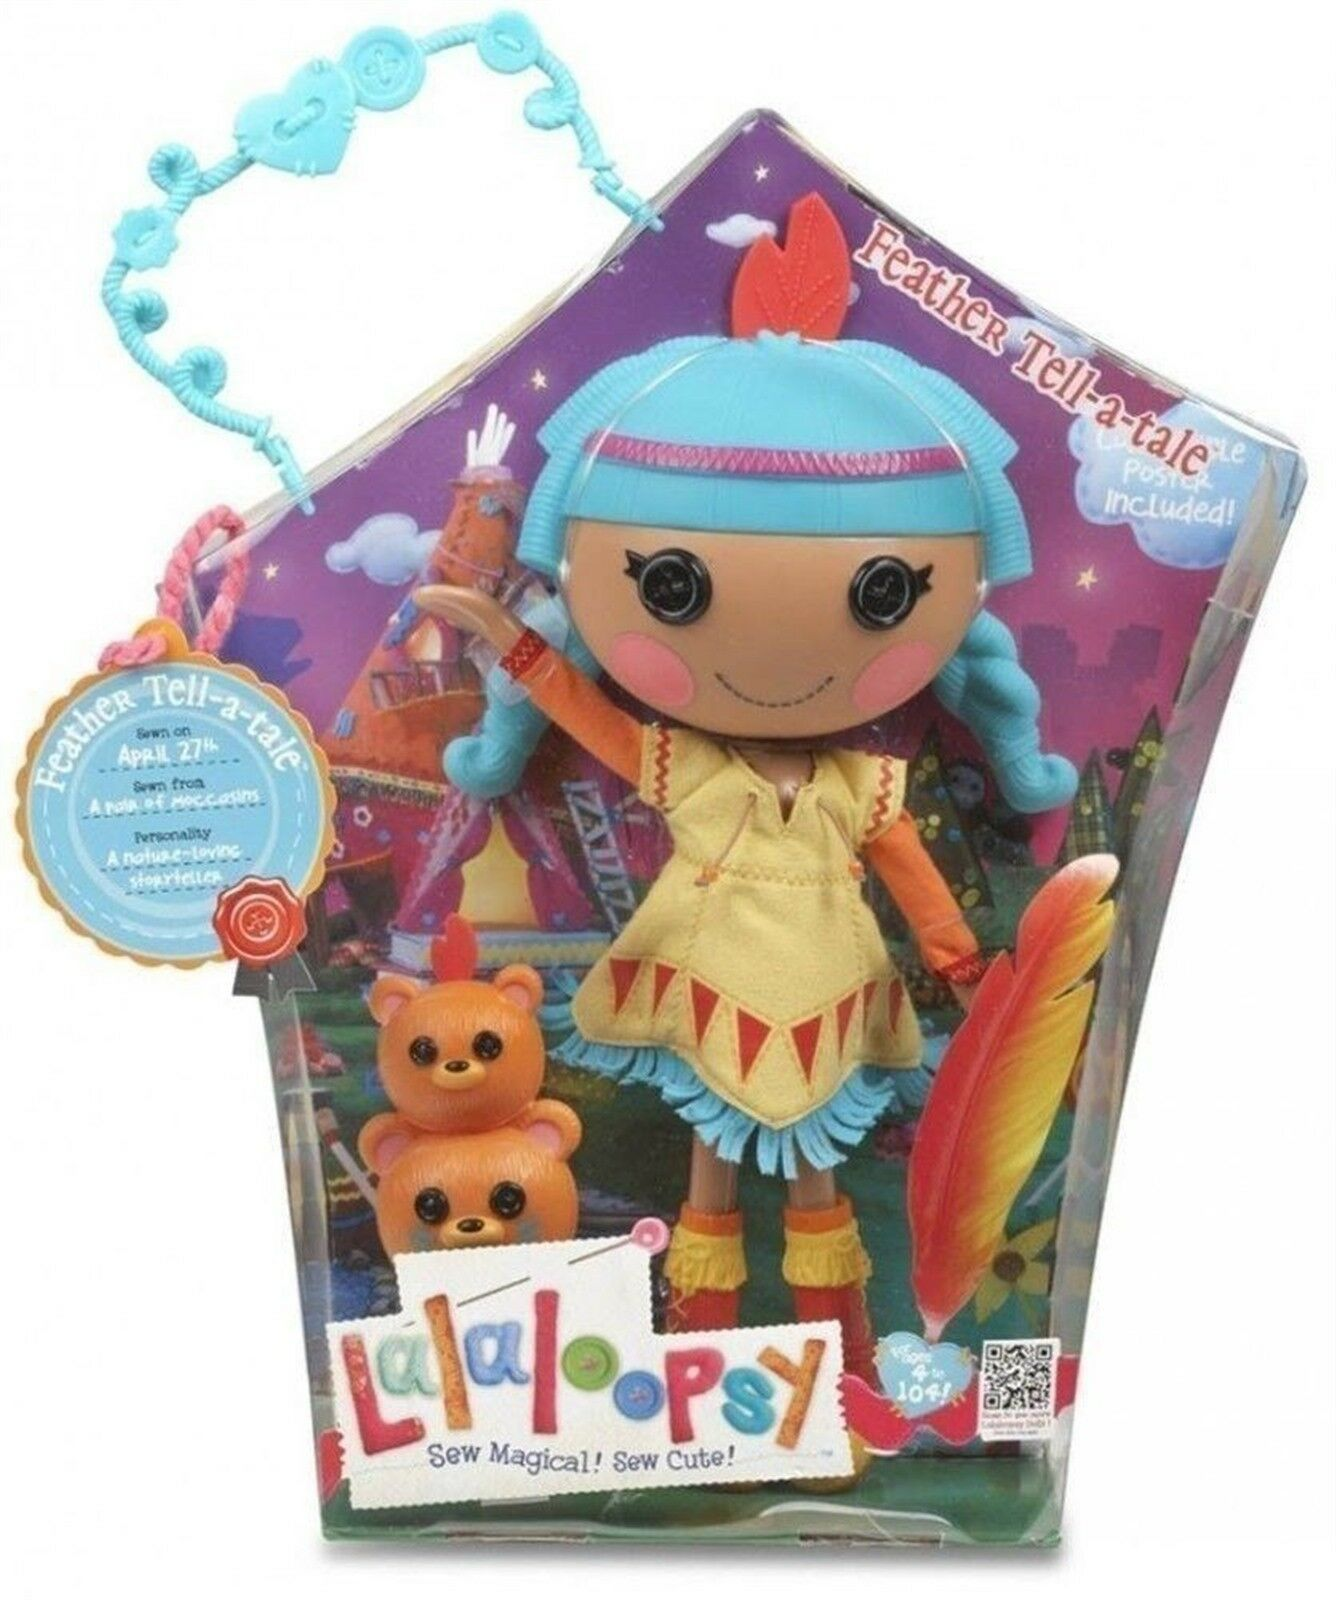 in vendita LALALOOPSY FEATHER TELL-A-TALE TELL-A-TALE TELL-A-TALE ( gree bambola) MIB  80% di sconto